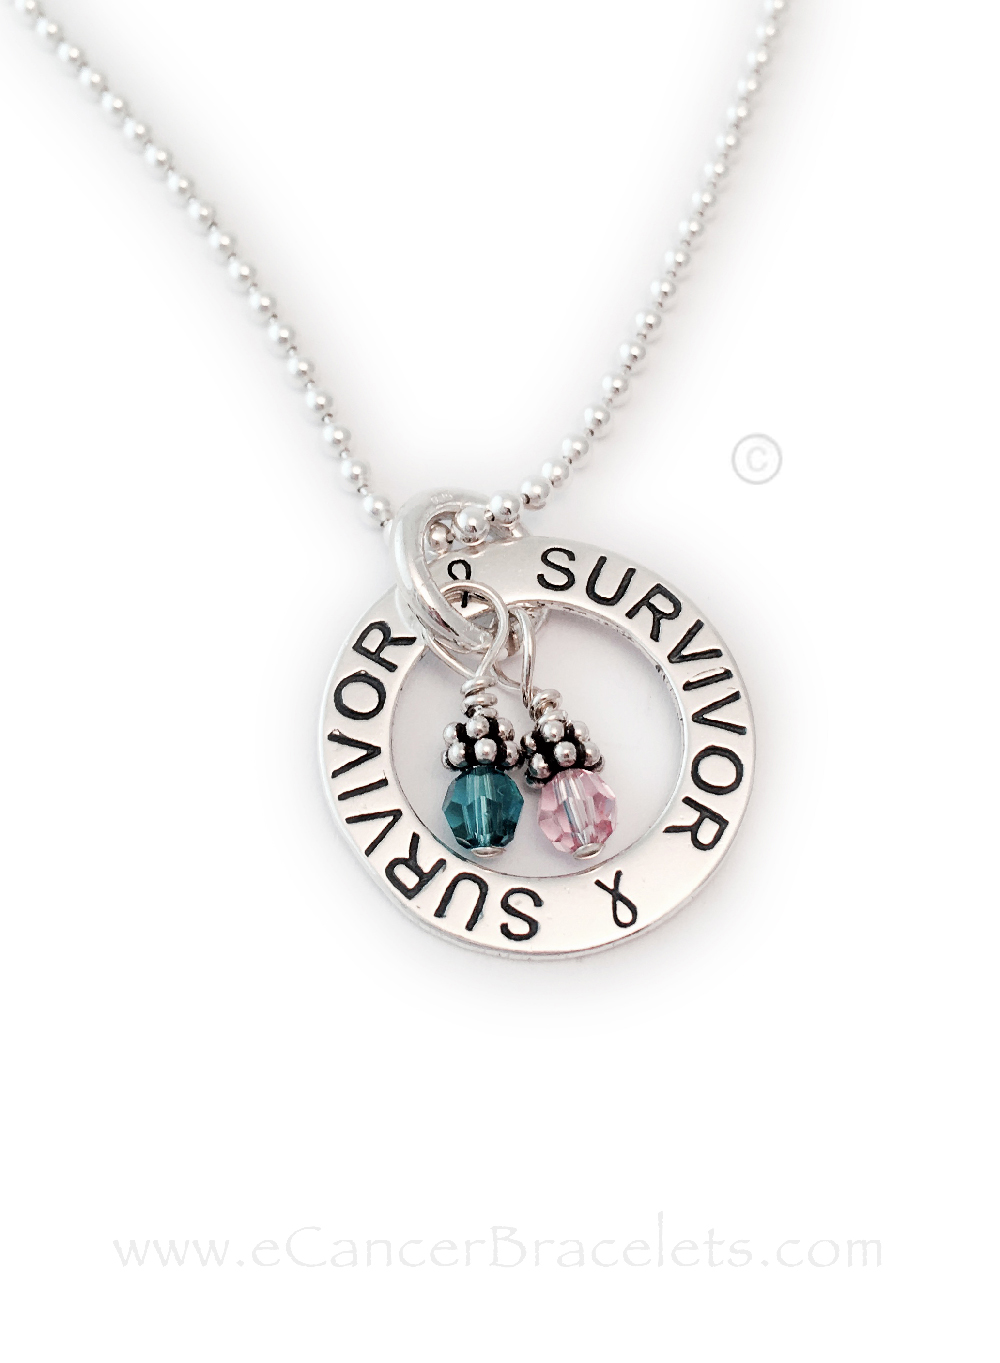 This Survivor Survivor Necklace is shown with 2 Cancer Awareness Charms: Teal and Pink for Ovarian and Breast Cancers